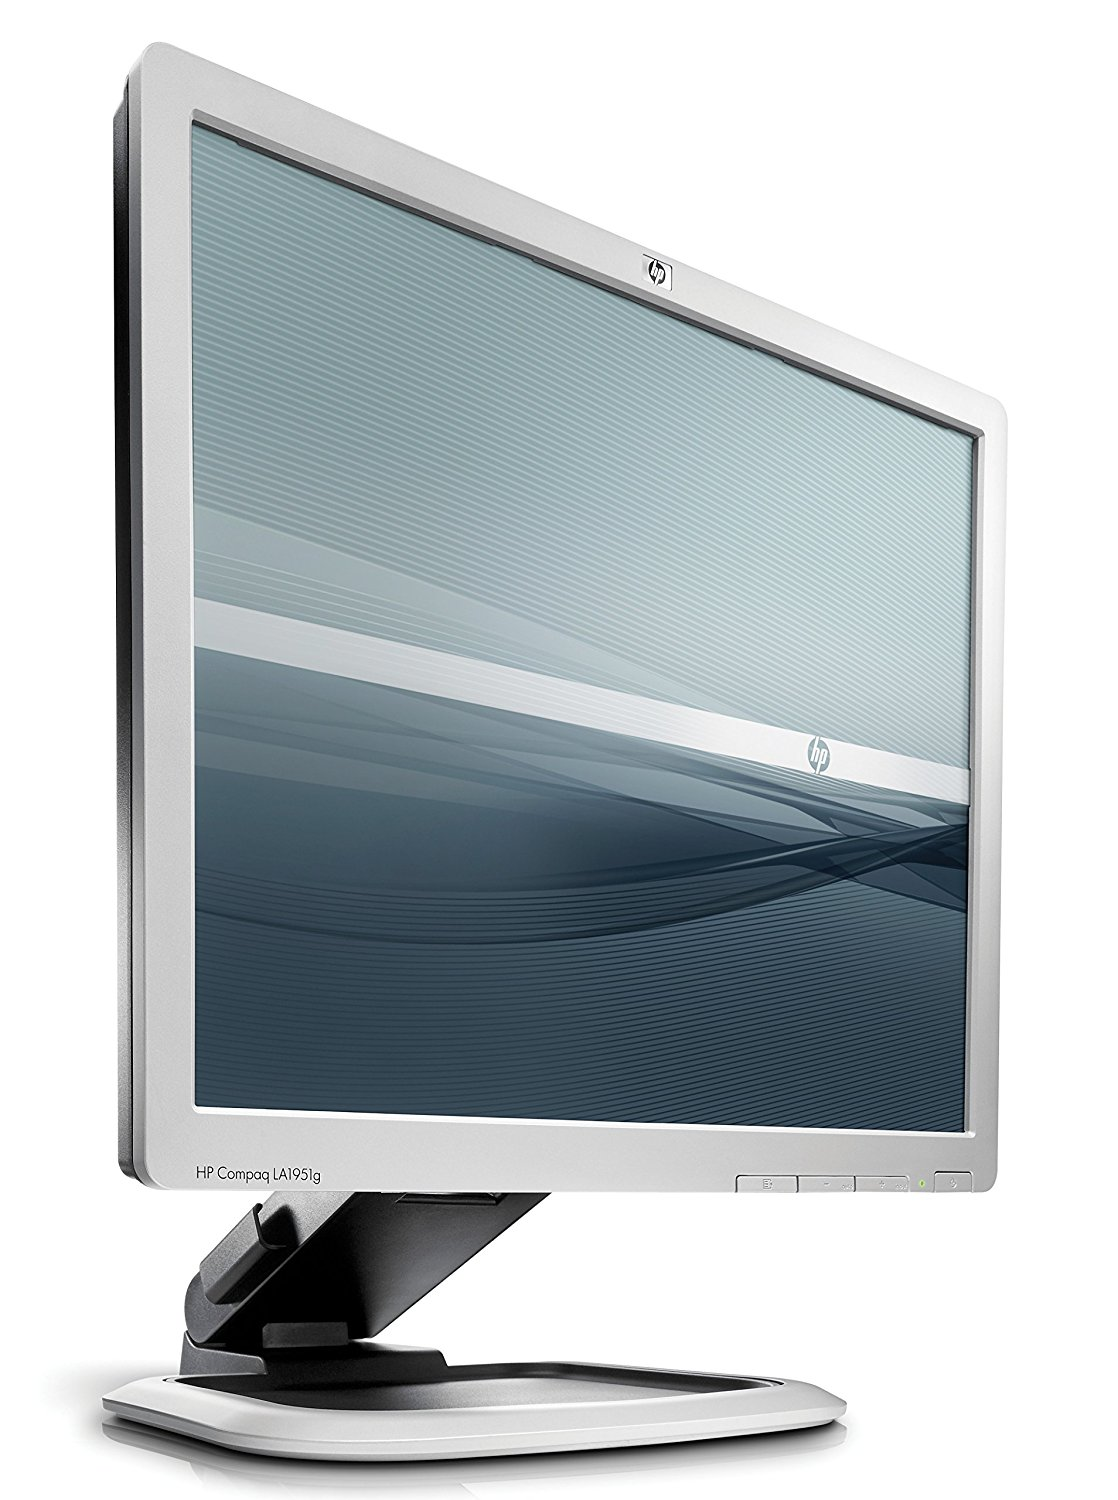 Cheap Hp 19 Lcd Monitor, find Hp 19 Lcd Monitor deals on line at